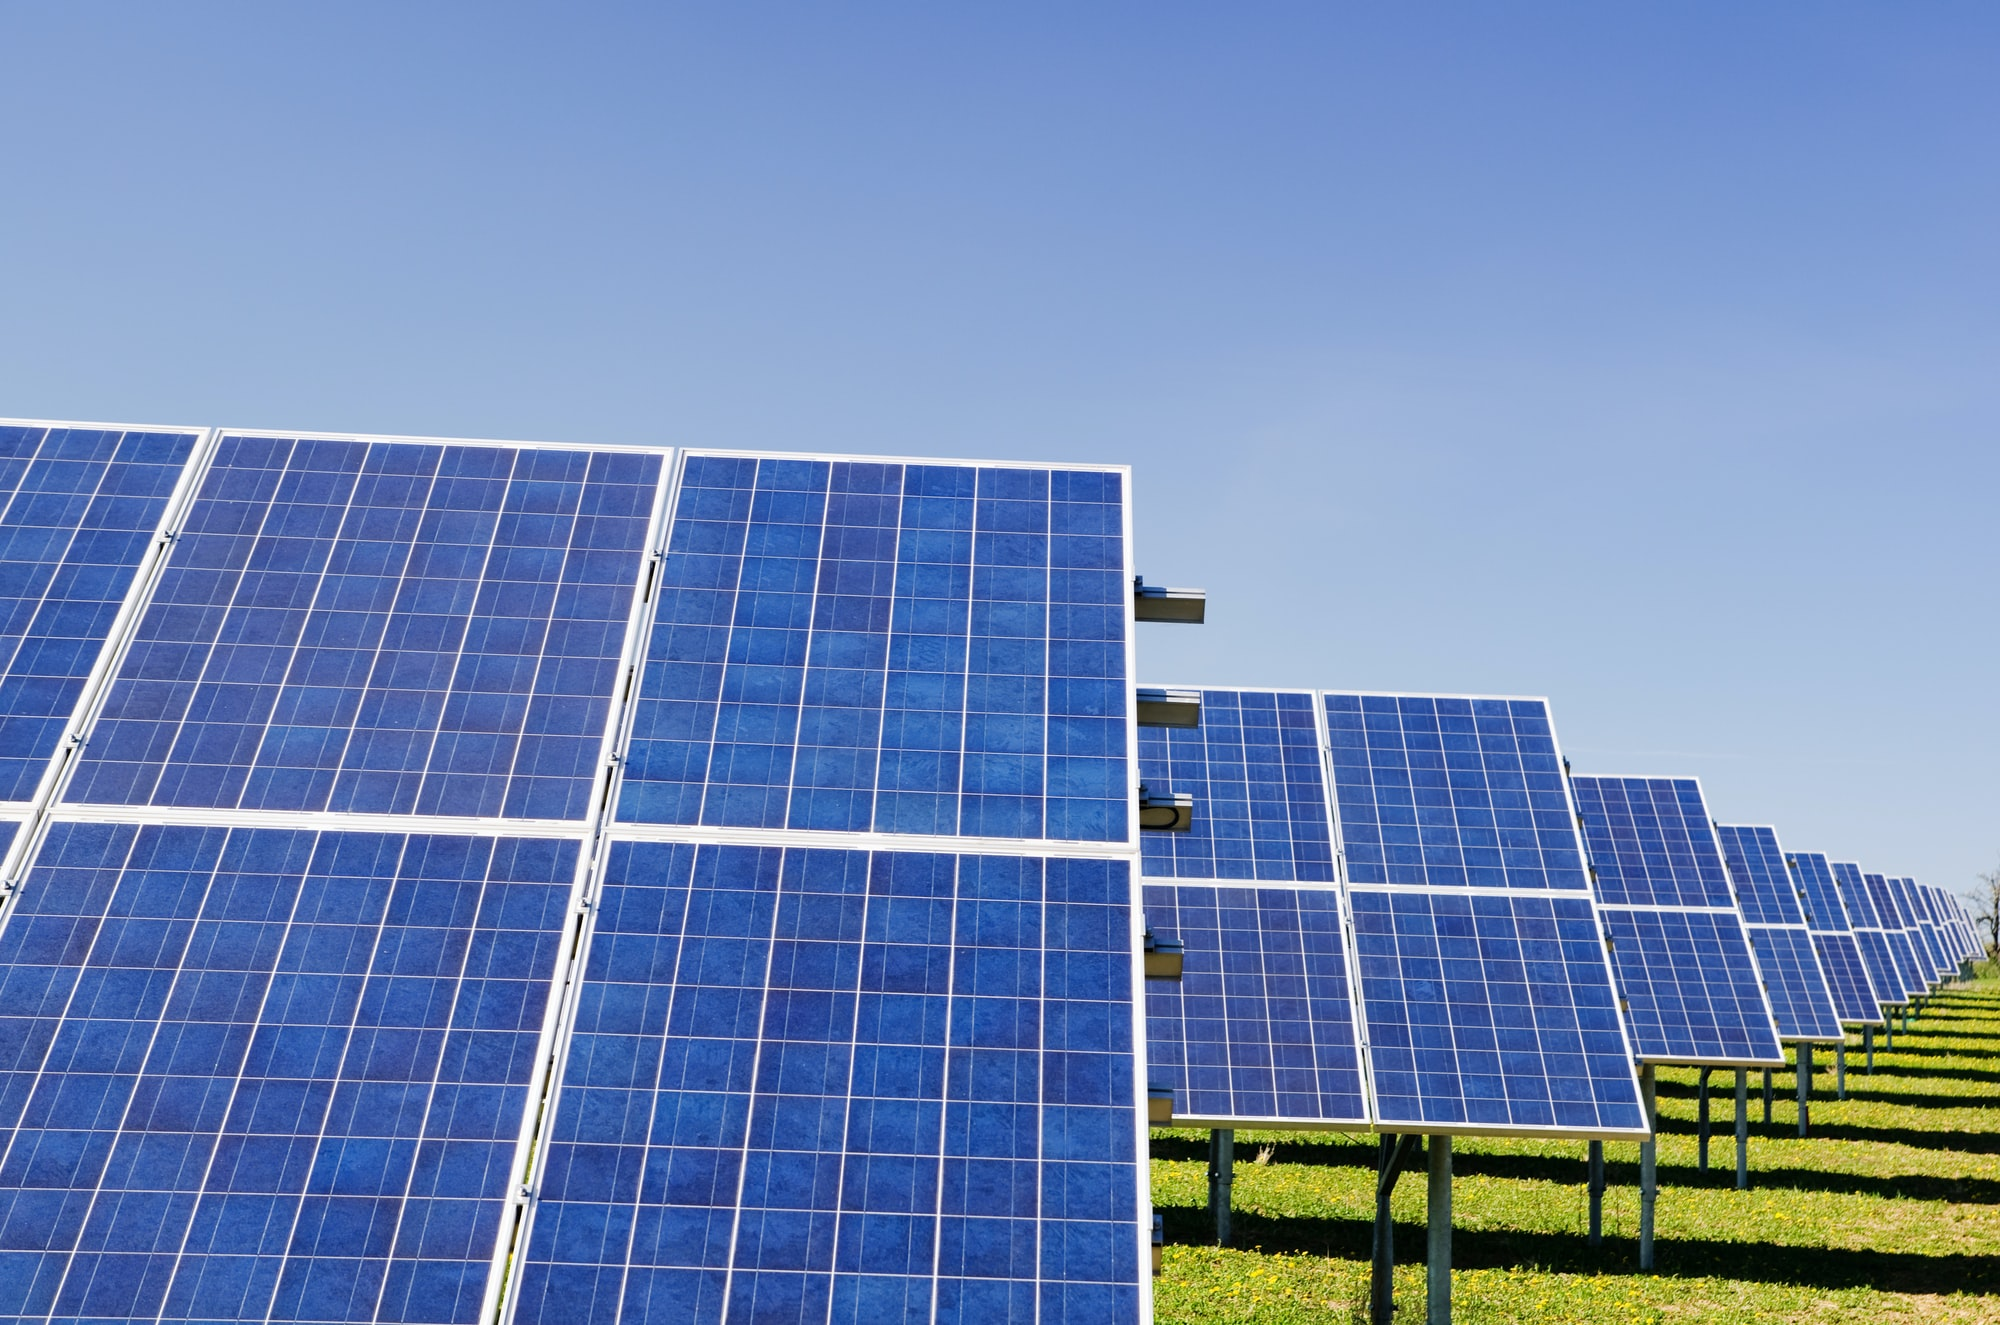 Solar Supply Chain Bill Aims to Upgrade U.S. Manufacturing Facilities